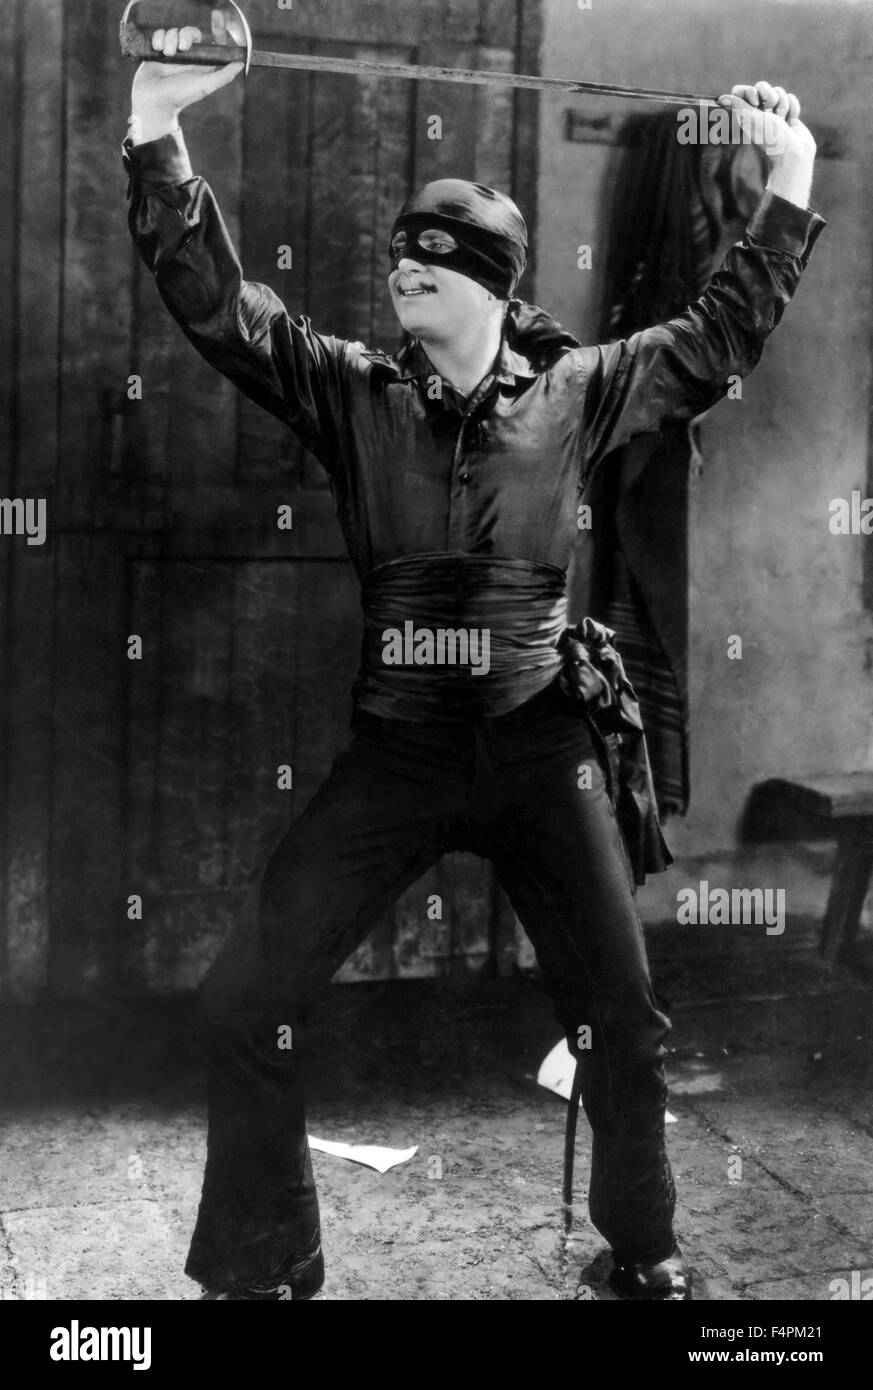 Douglas Fairbanks / The Mark of Zorro / 1920 directed by Fred Niblo [United Artists] - Stock Image